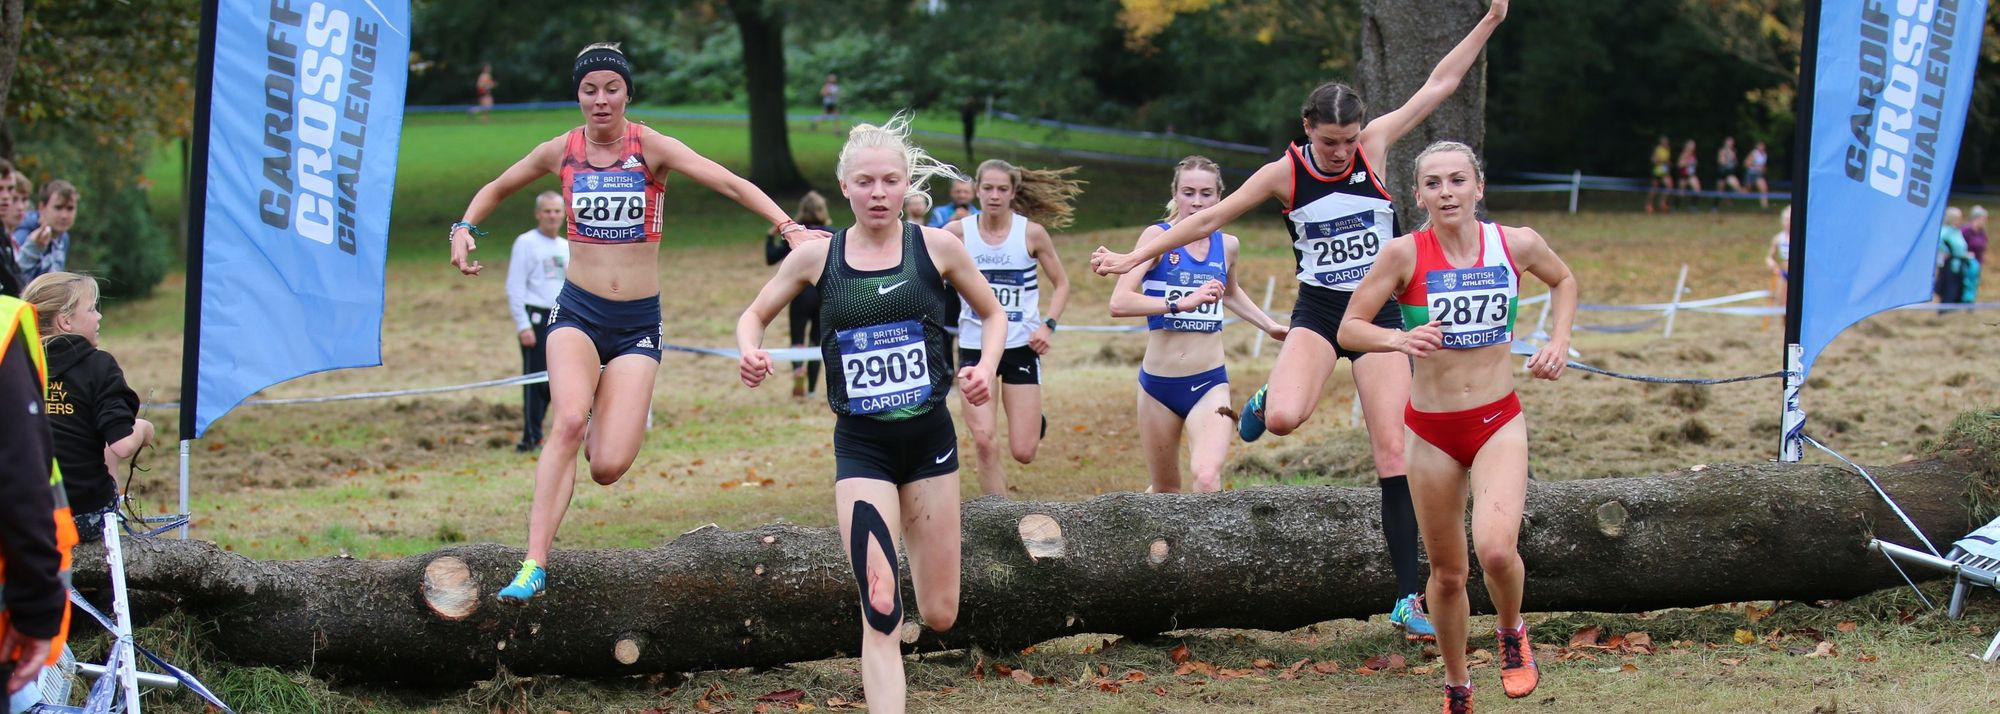 The Cardiff Cross Challenge hosts the first Gold standard meeting of the new World Athletics Cross Country Tour.